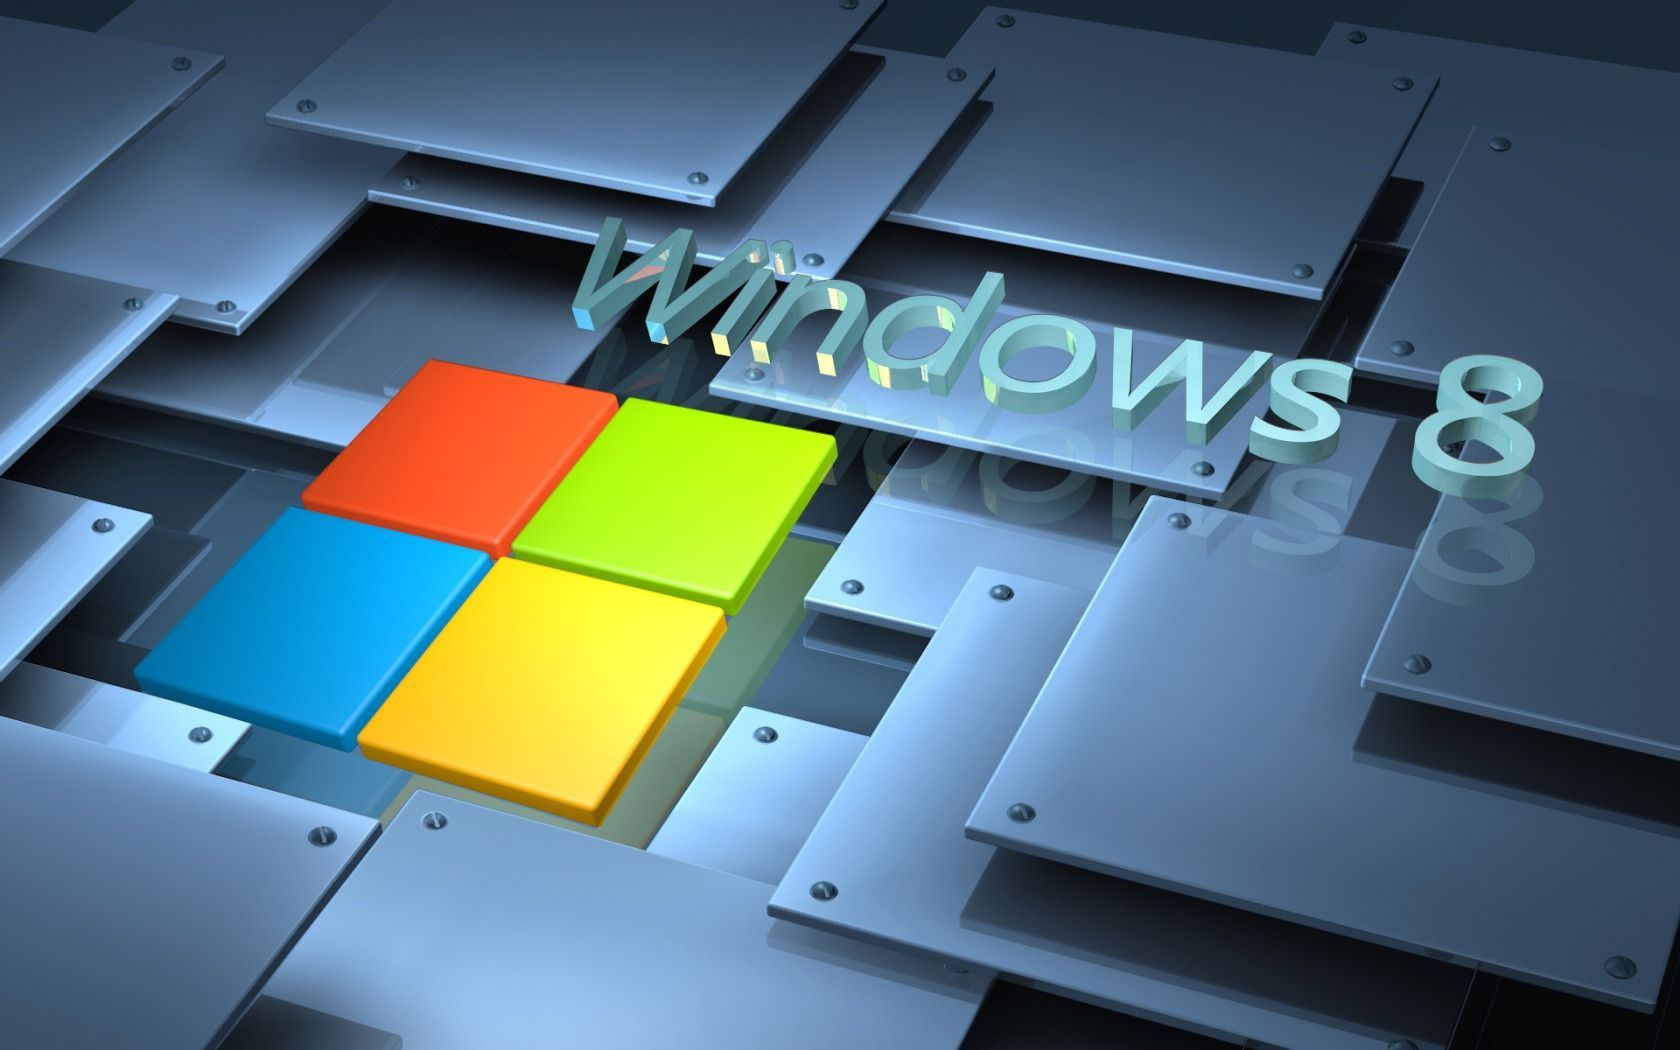 30 3d windows 8 wallpapers images backgrounds pictures for Elegant windows